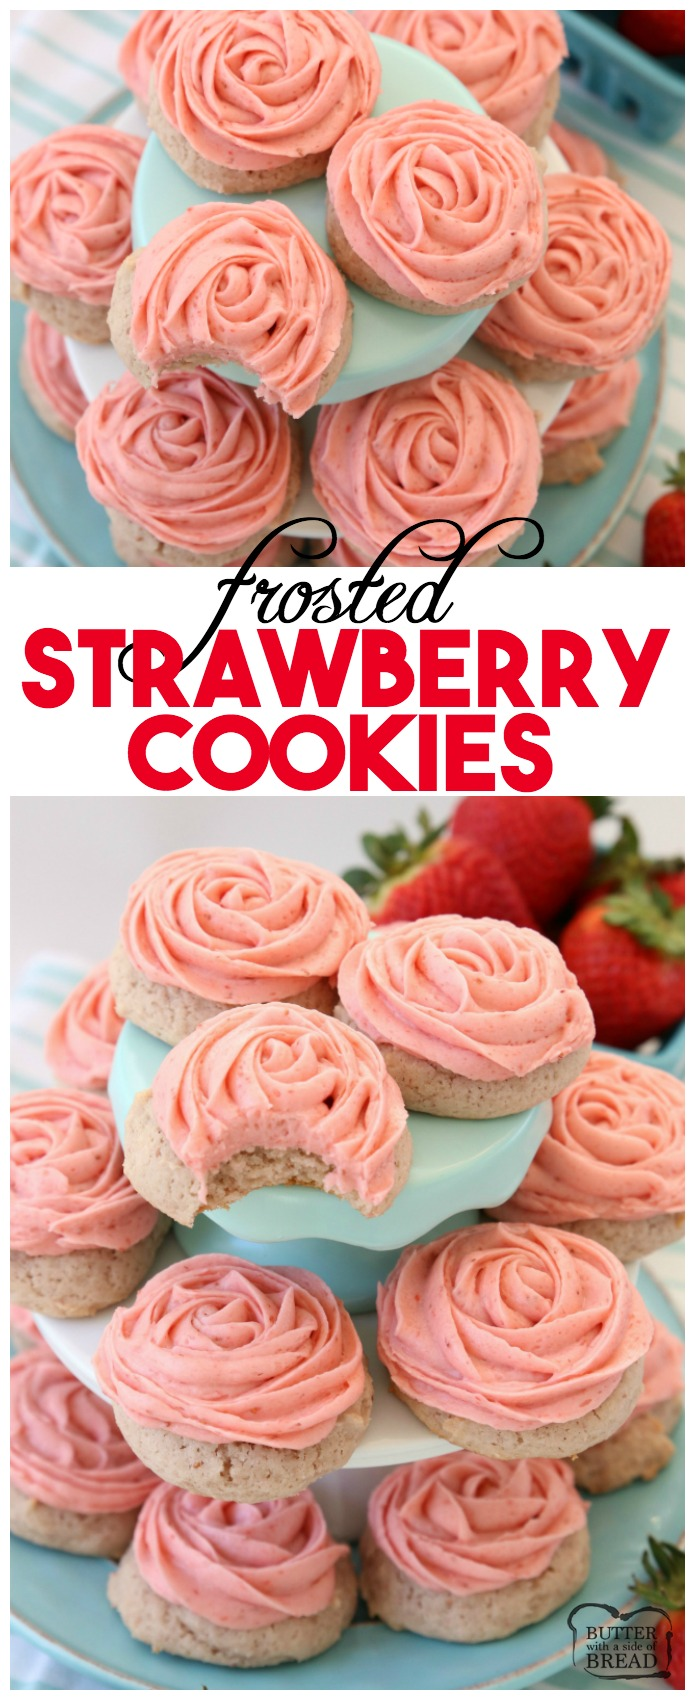 Frosted Strawberry Cookies made by adding fresh strawberries to a simple sugar cookie dough. No rolling out or chilling necessary! Just bake and top with my amazing strawberry buttercream frosting. Easy Strawberry Cookies piped with a super simple pink rose, so they taste incredible and they're pretty too! Best Ever #Strawberry #Cookies with Strawberry #Buttercream #Frosting #recipe from Butter With A Side of Bread #baking #food #dessert